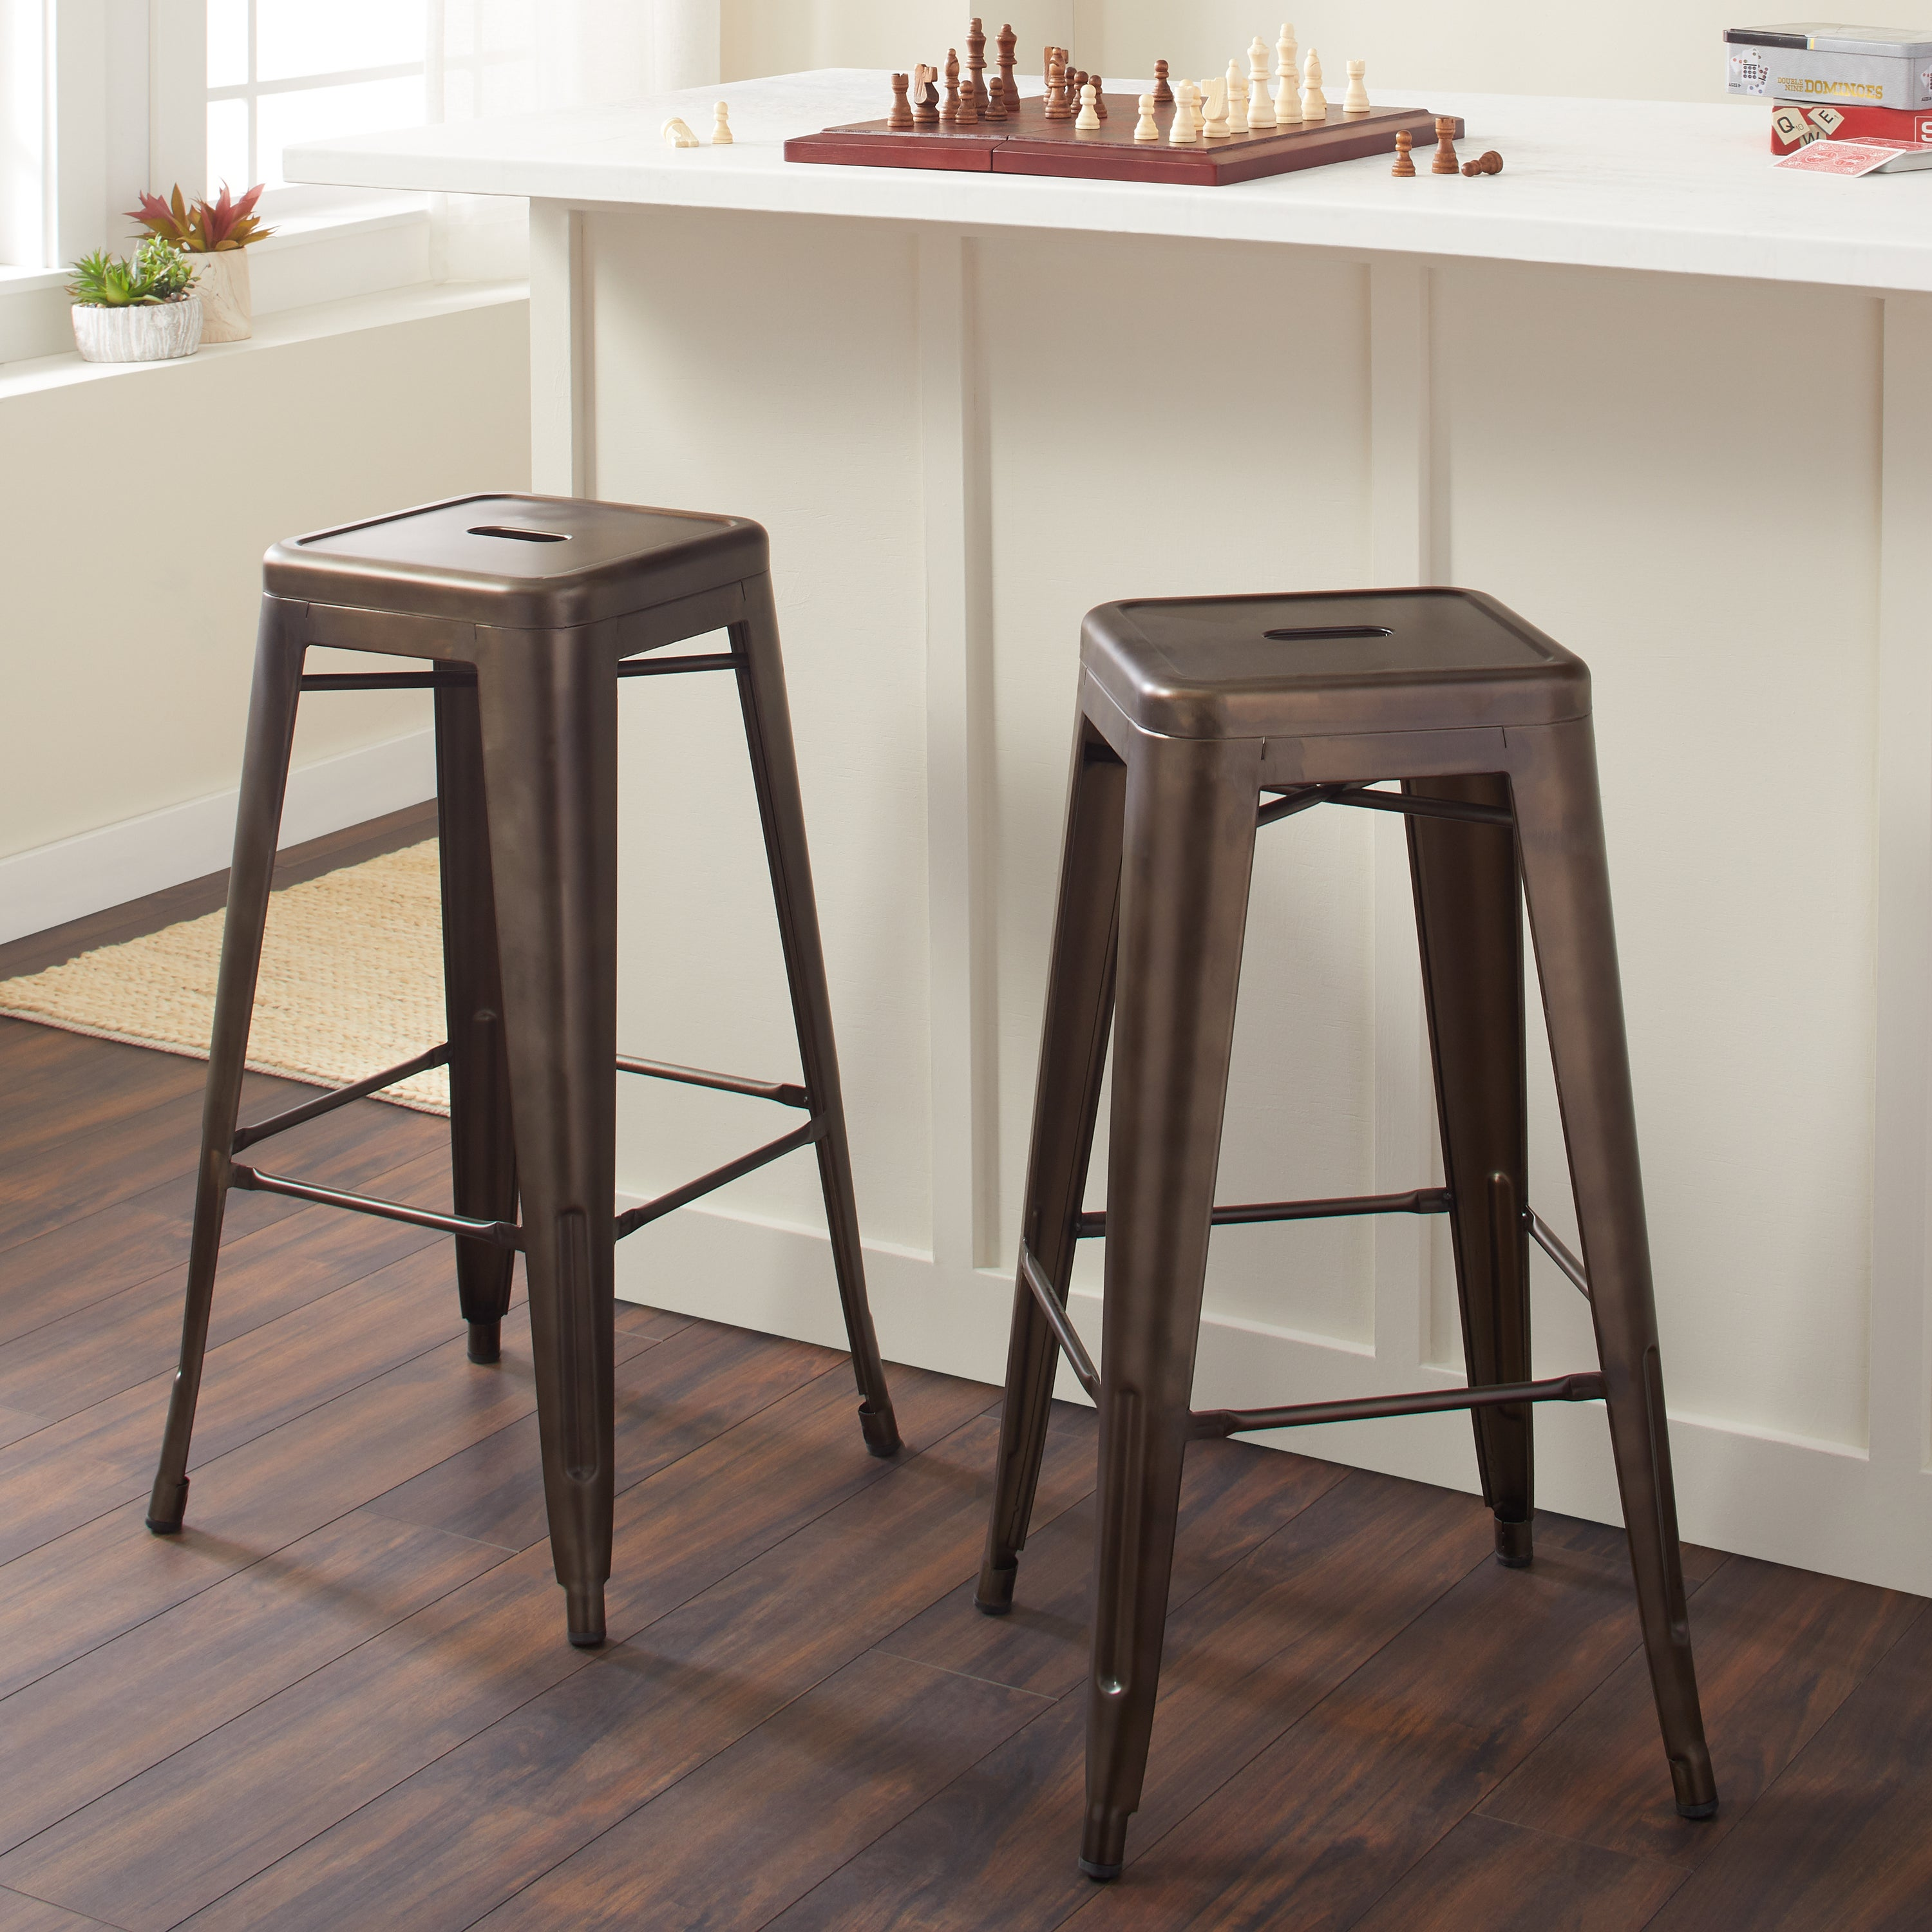 Counter Bar Stools Online At Our Best Dining Room Furniture Deals